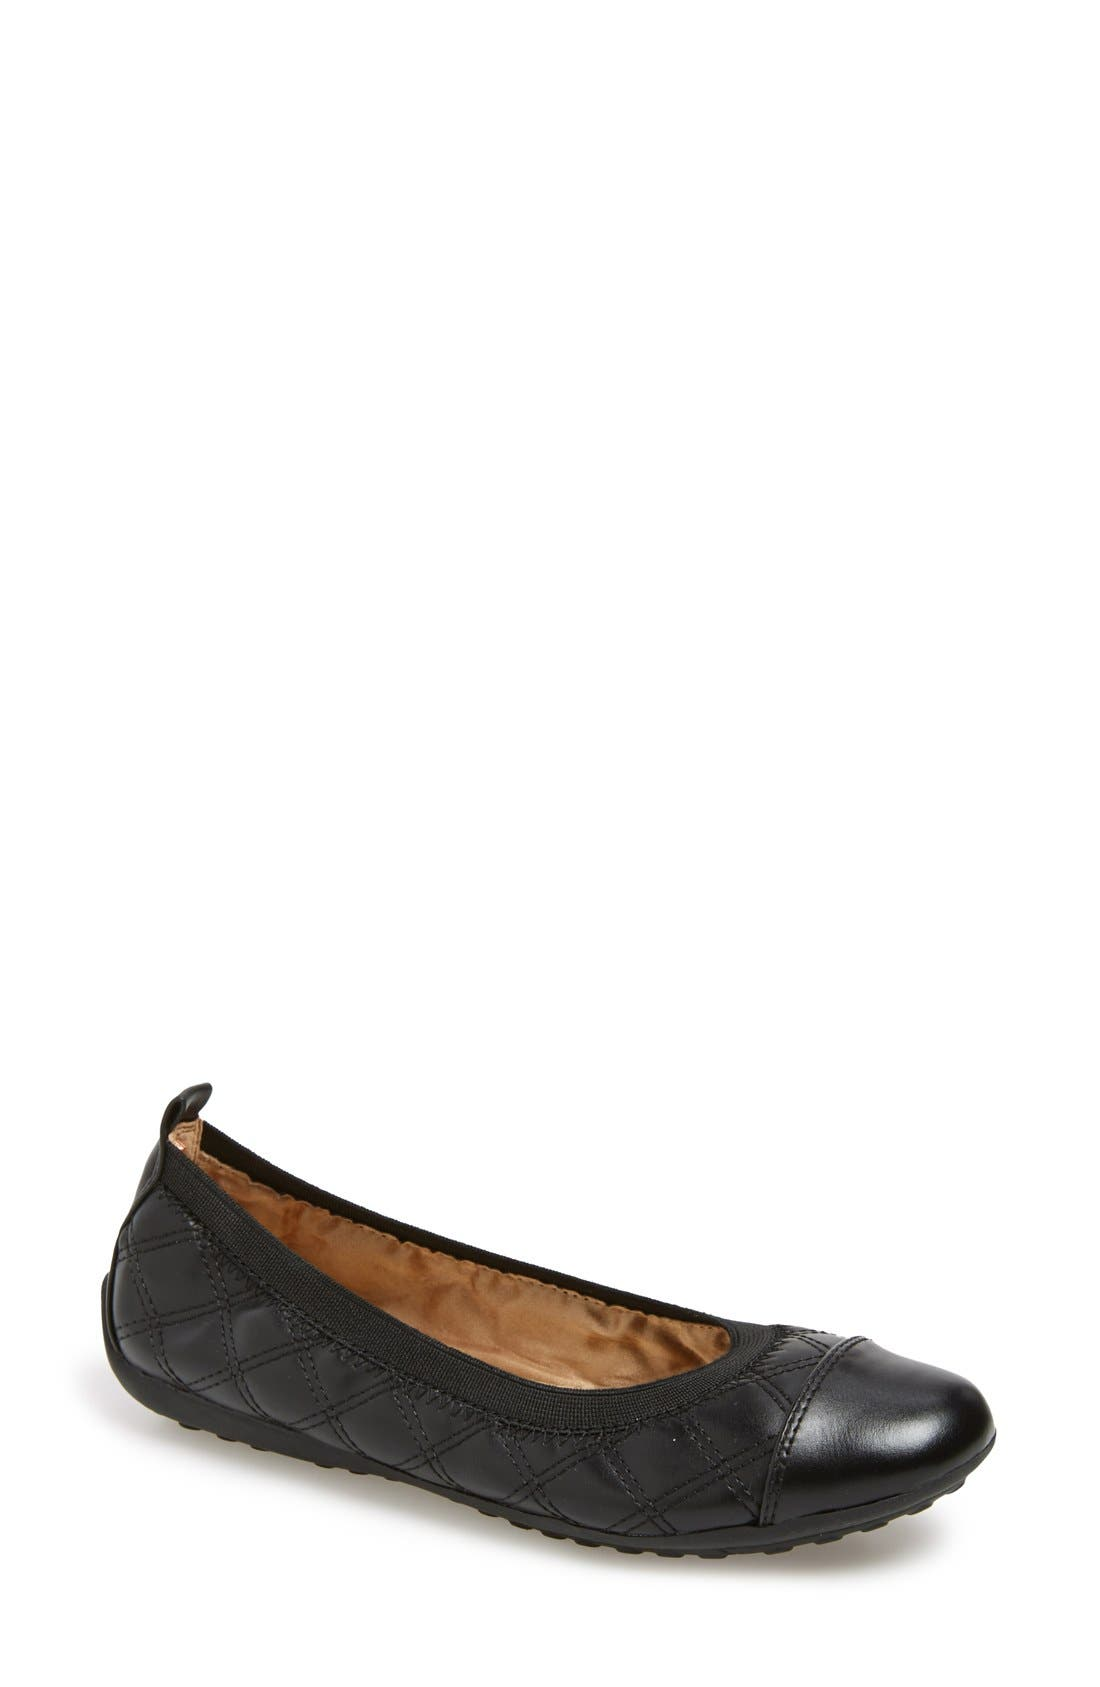 'Piuma' Ballerina Flat,                             Main thumbnail 1, color,                             Black Synthetic Leather